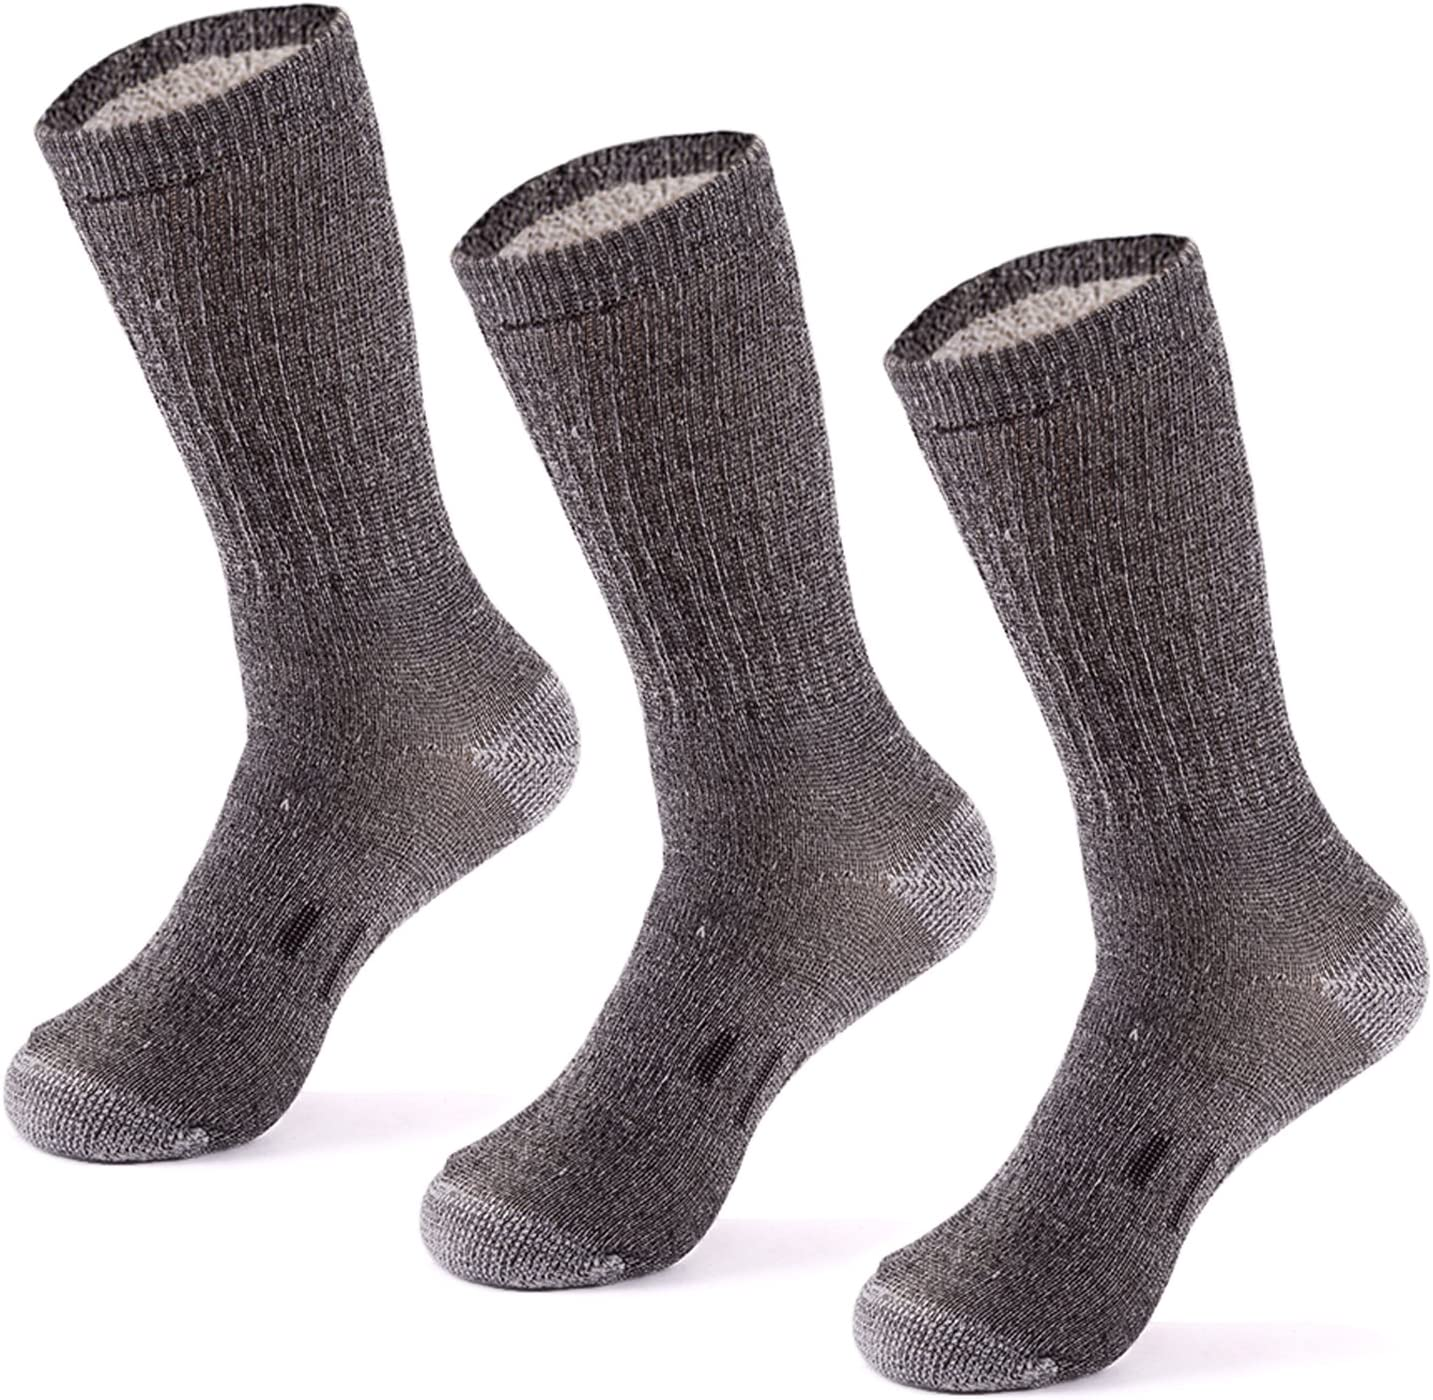 Best Thermal Socks for Extreme Cold